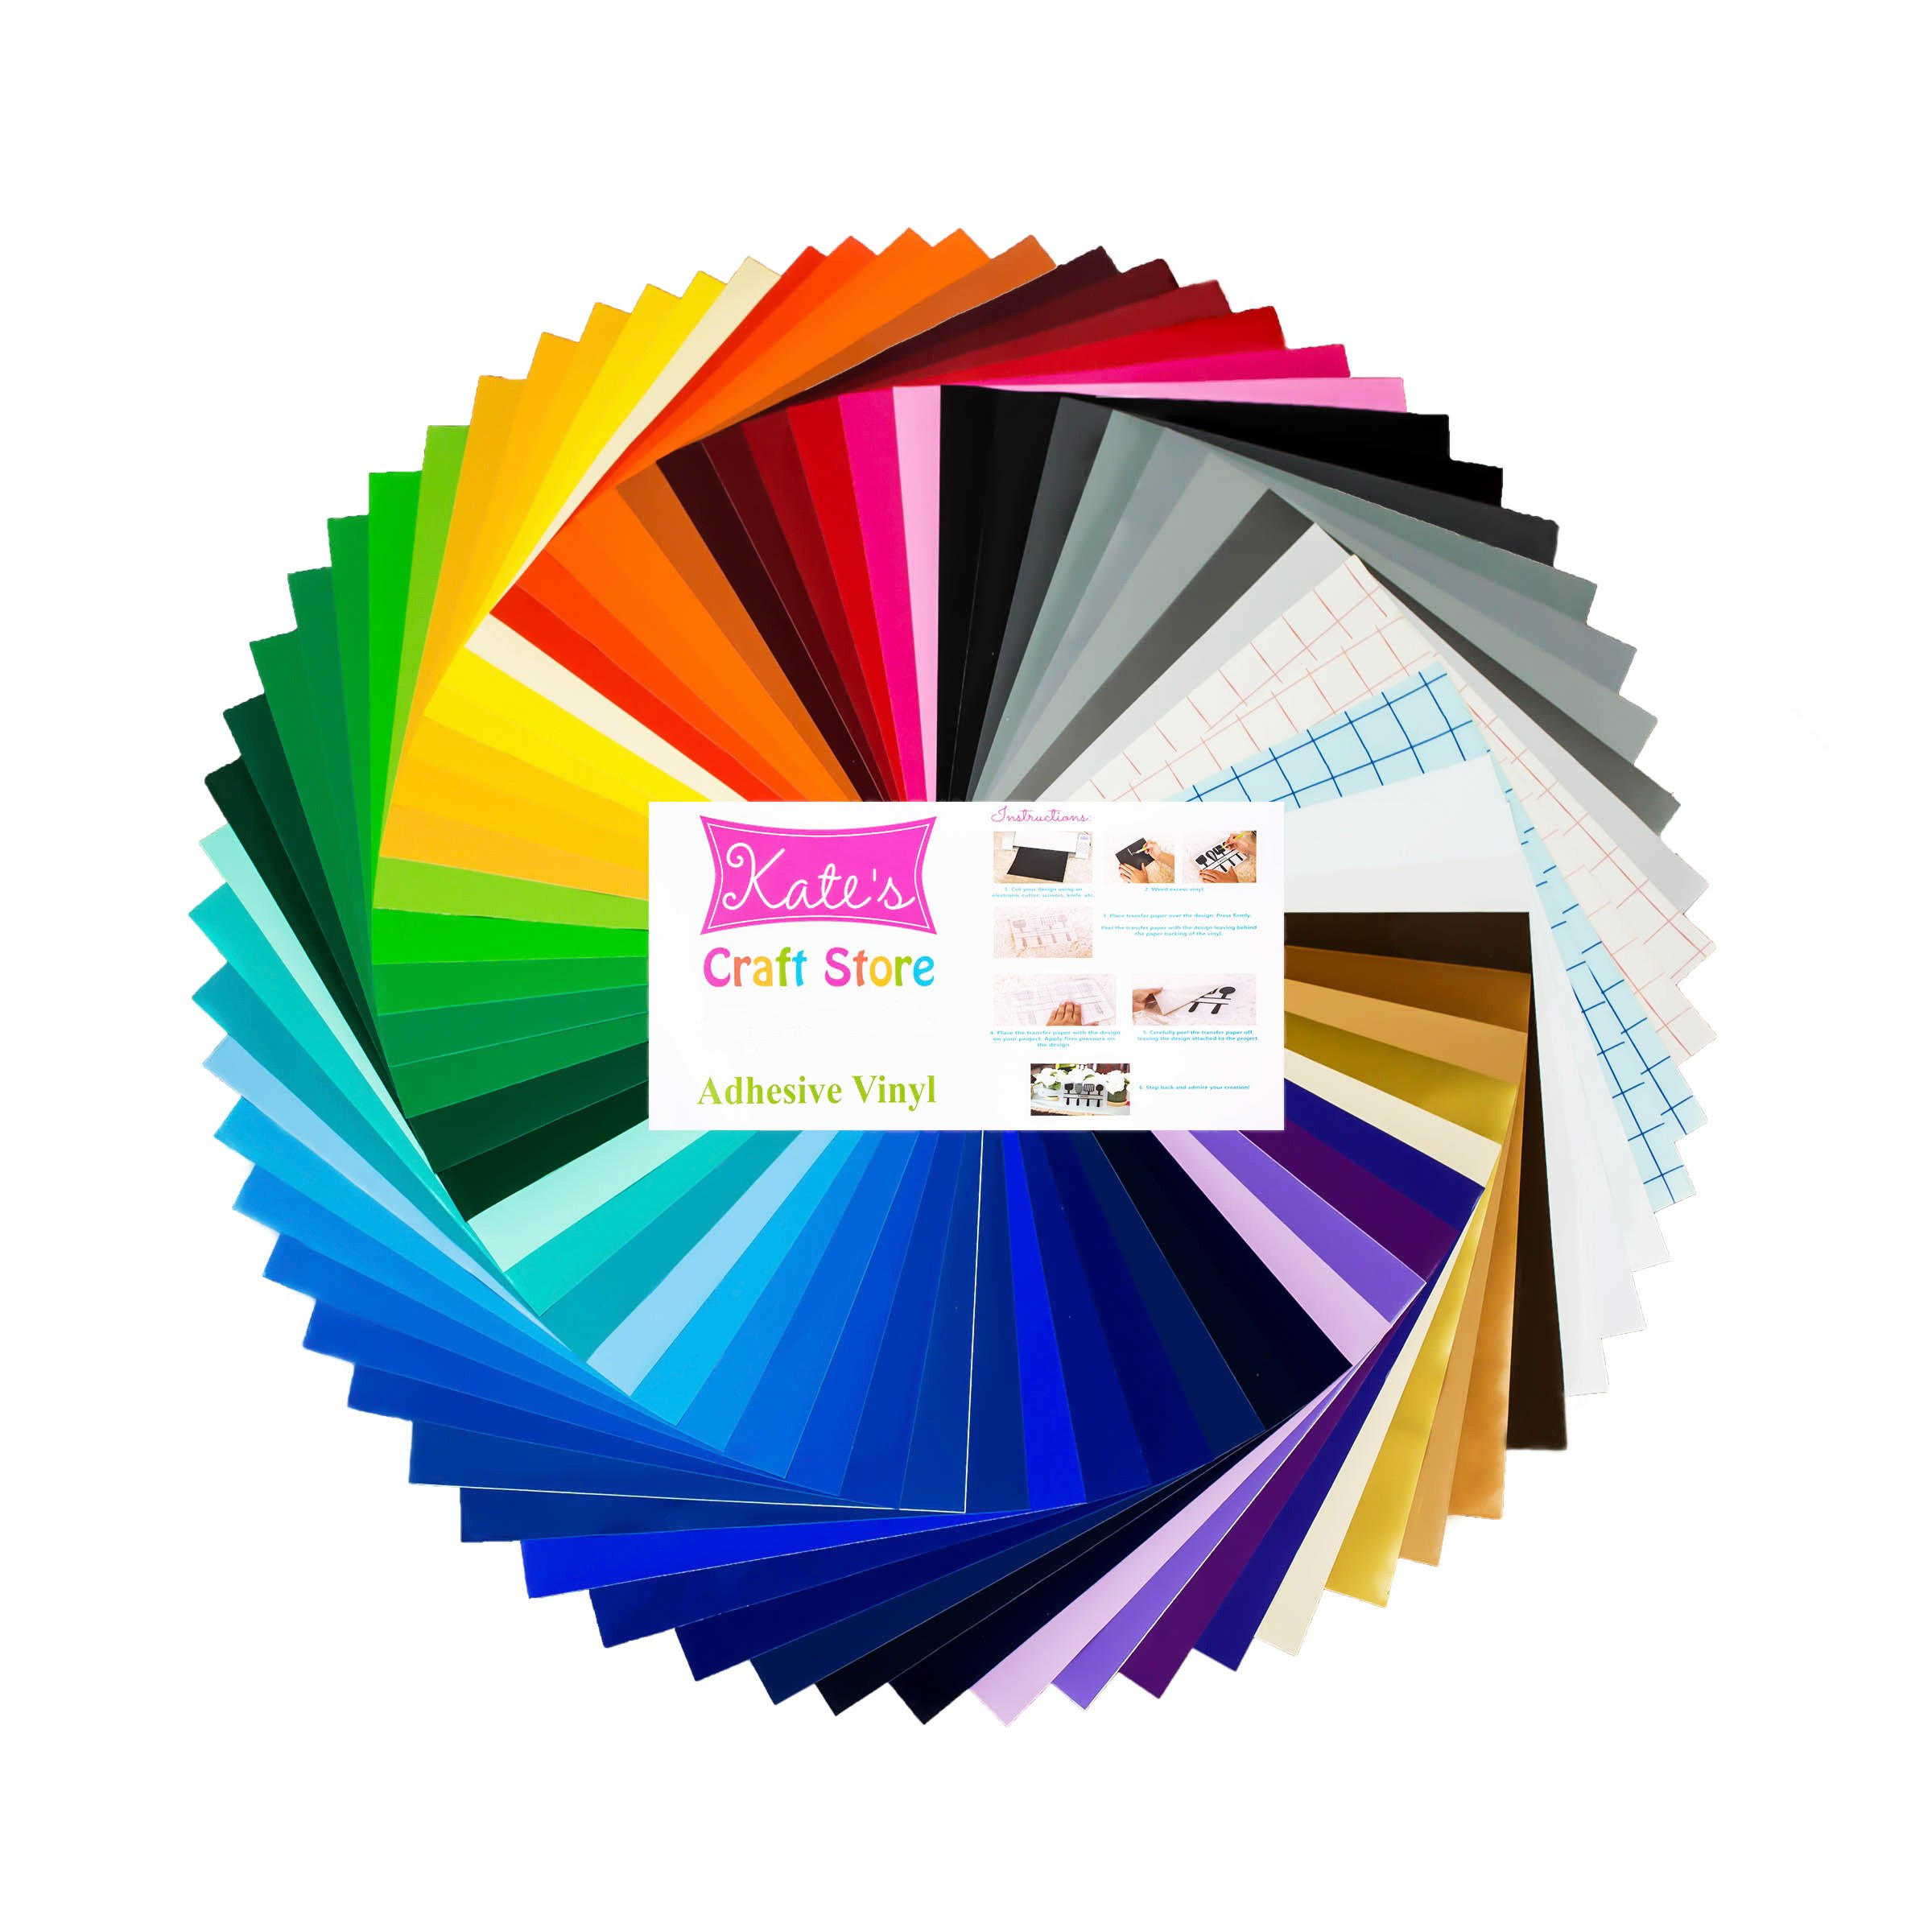 63 Colors Oracal 651 Permanent Outdoor Adhesive Vinyl Sampler Pack